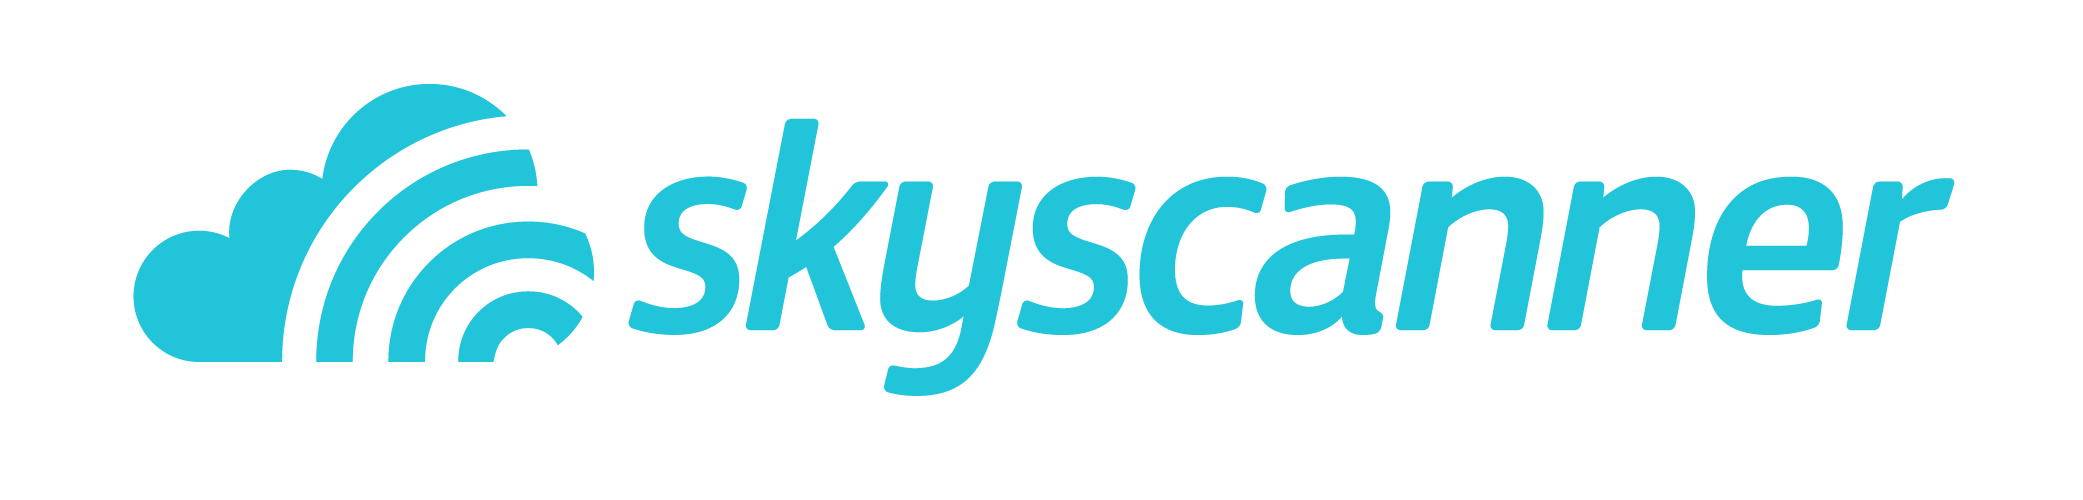 skyscannerlogo_blue.png